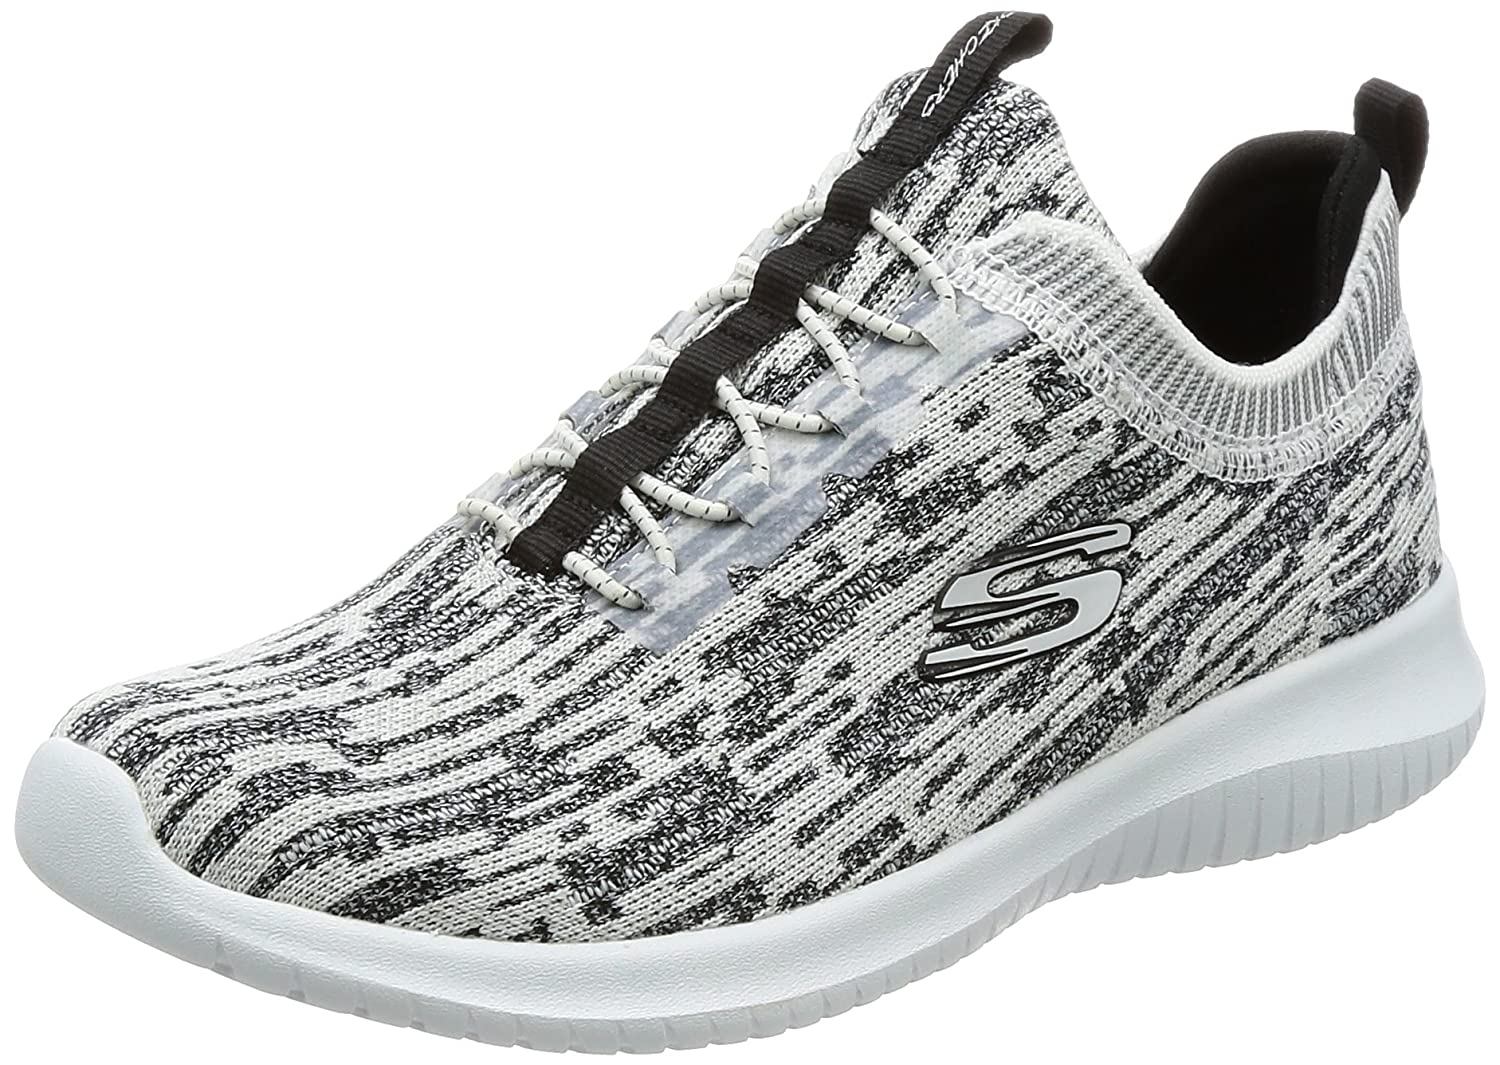 Skechers Women's Ultra Flex Bright Horizon Sneaker B01MZC6JEQ 9 B(M) US|White/Black